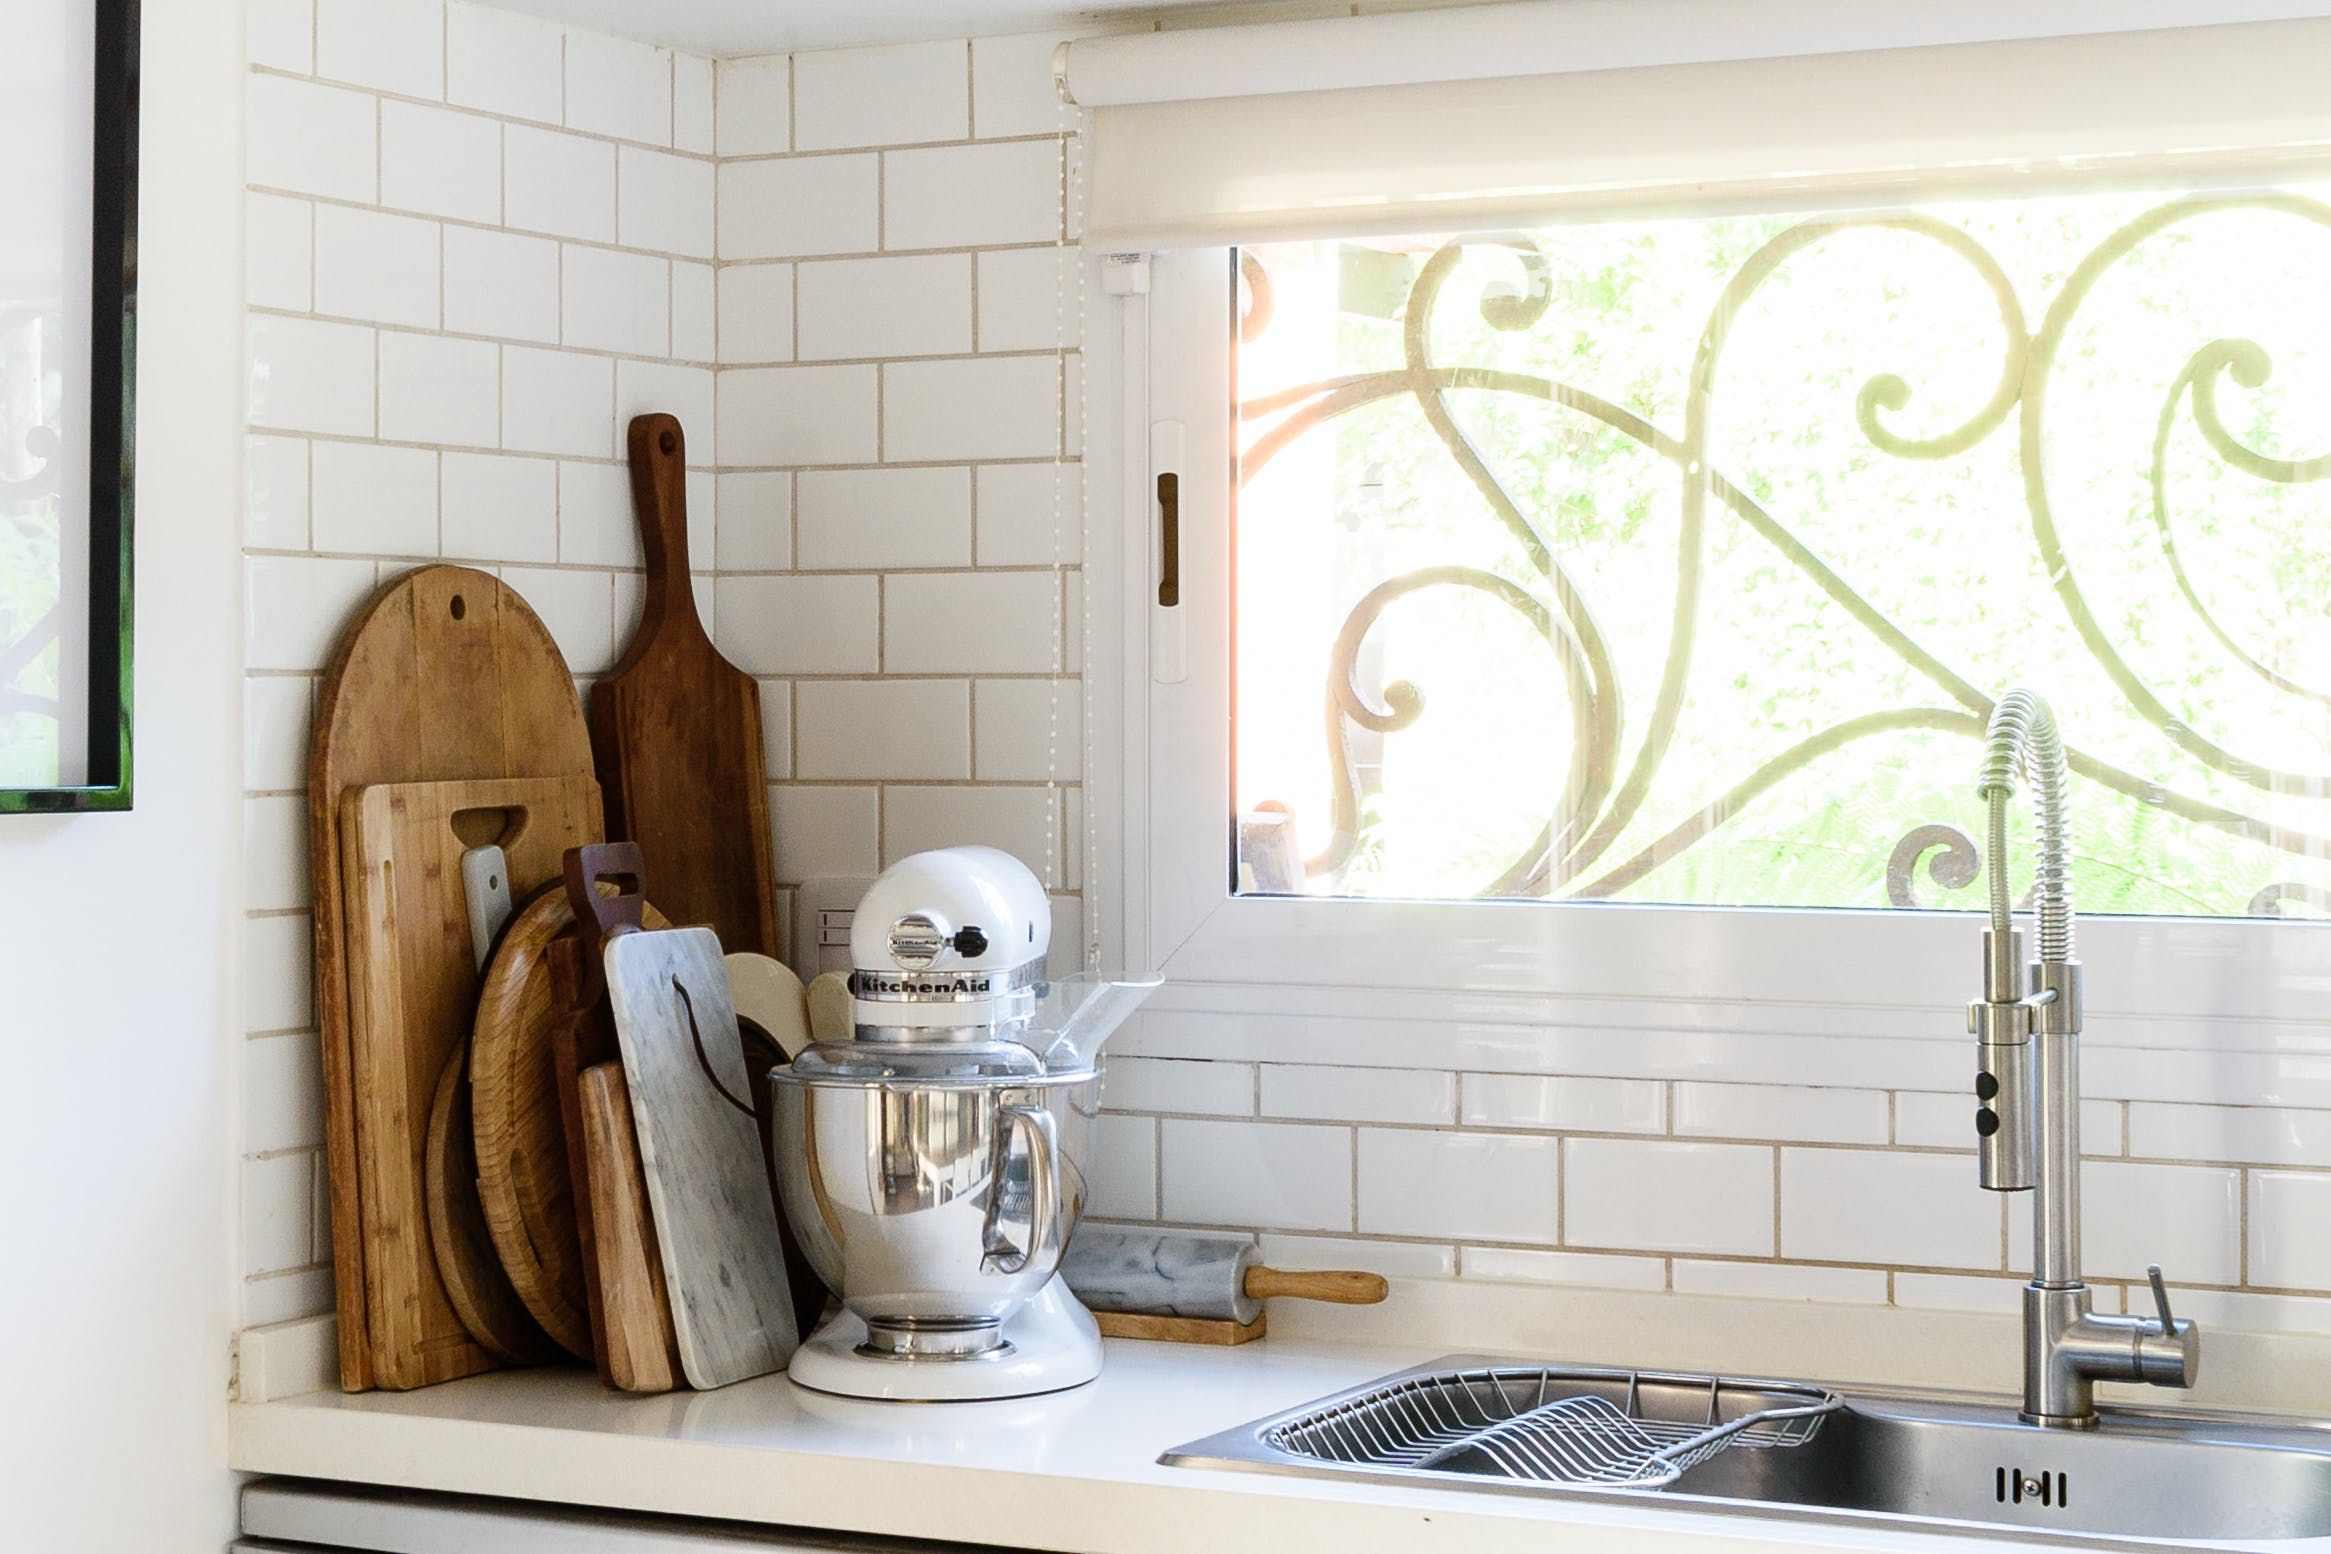 Shelf across kitchen window  tour a family of sixus cozy renovated buenos aires home  long